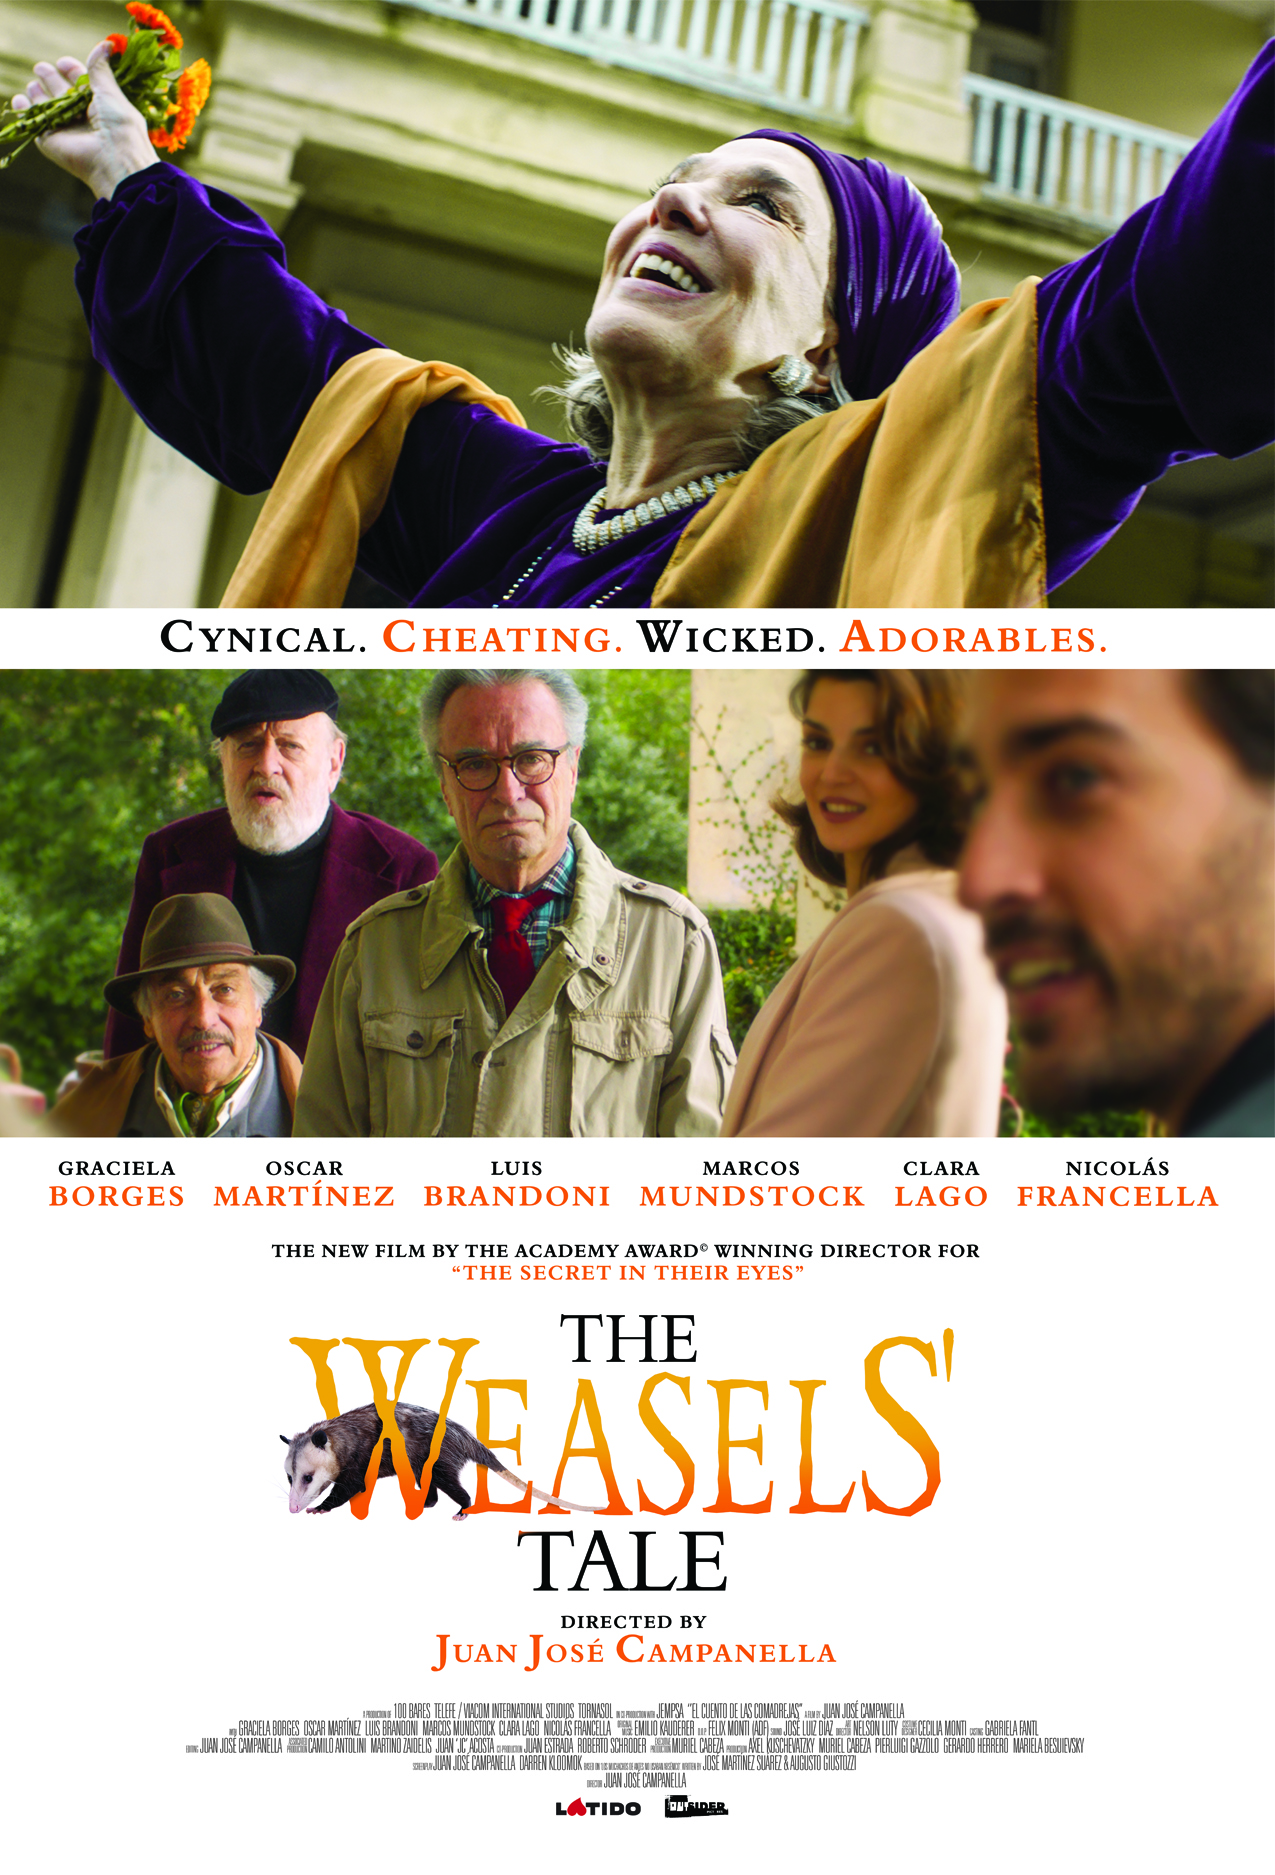 Poster for The Weasels' Tale